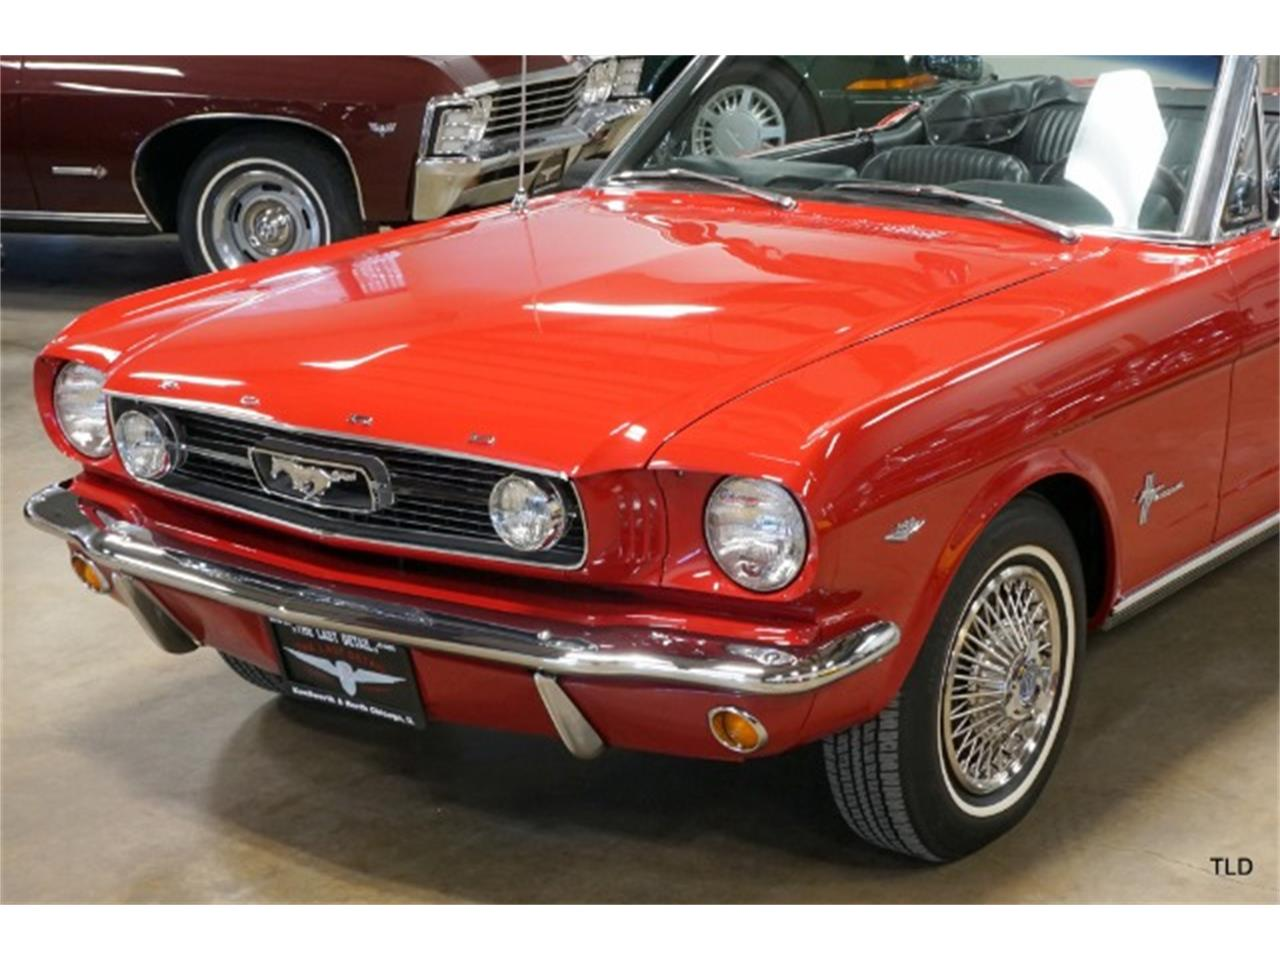 Large picture of 65 mustang located in chicago illinois 39000 00 pyy7